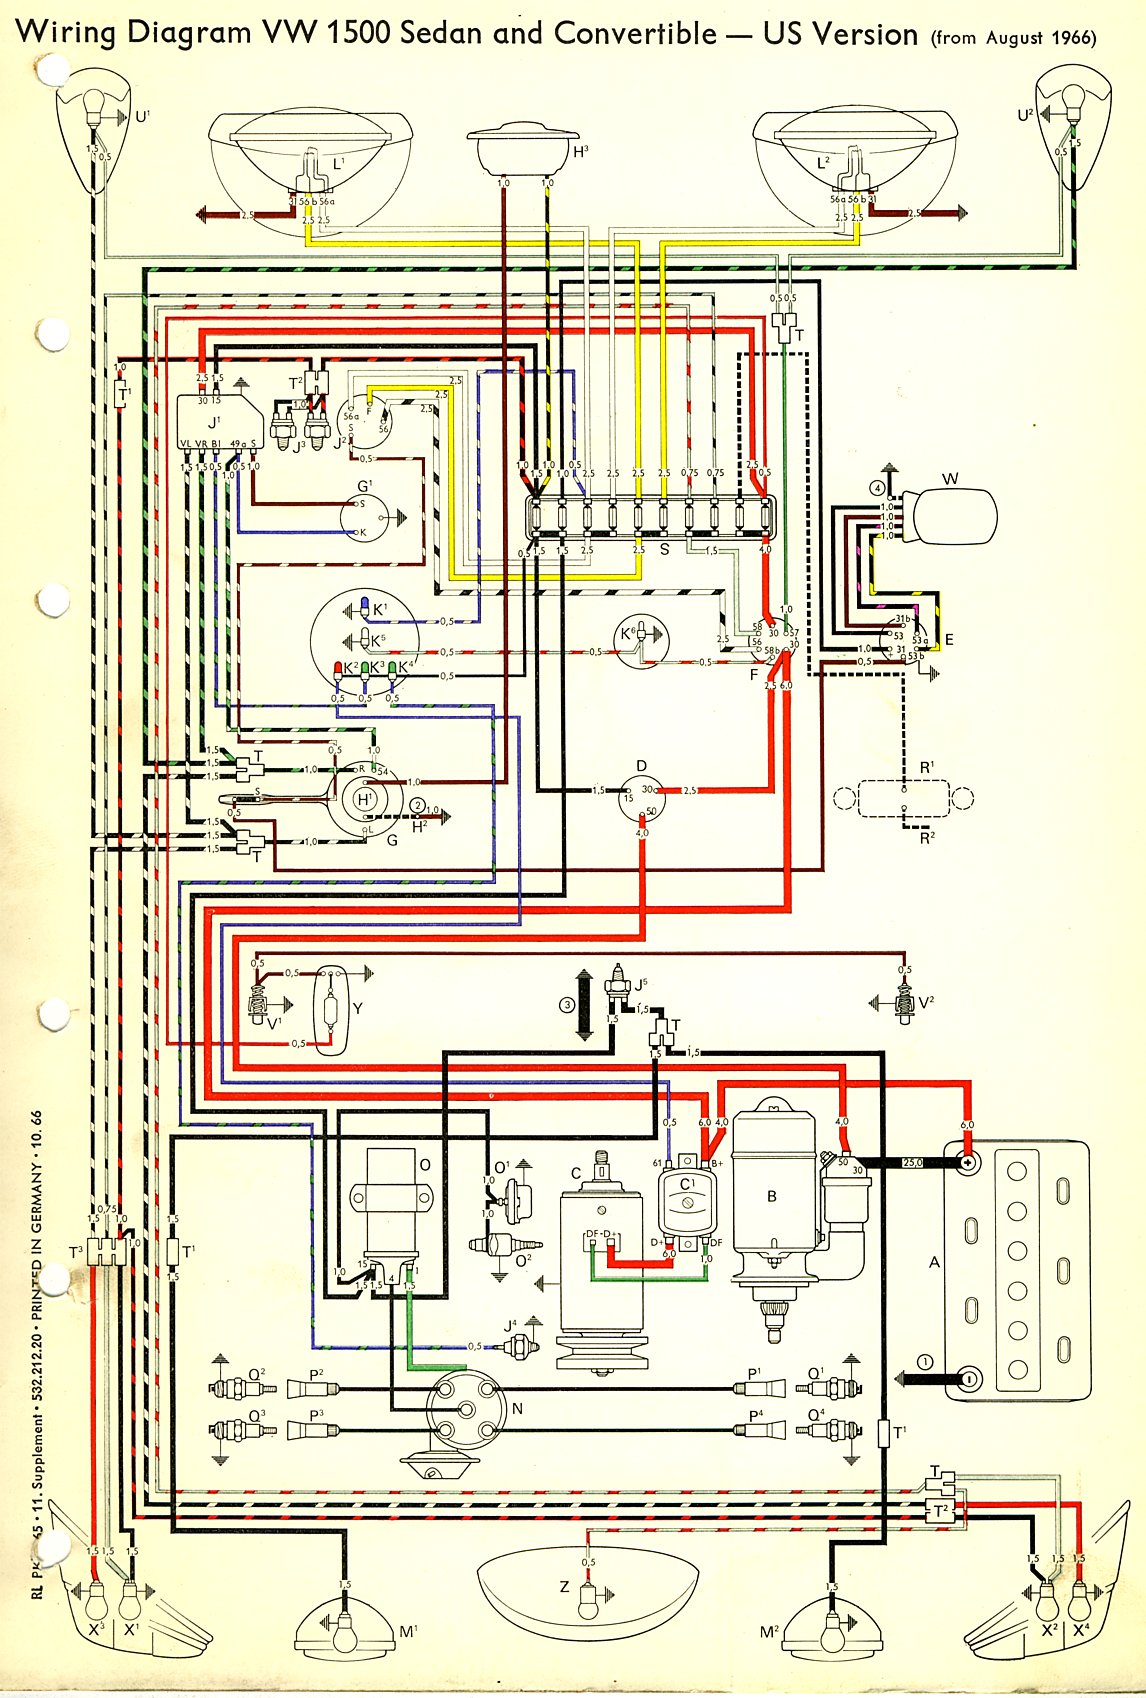 bug_67_USA thesamba com type 1 wiring diagrams 1973 vw beetle wiring diagram at cos-gaming.co